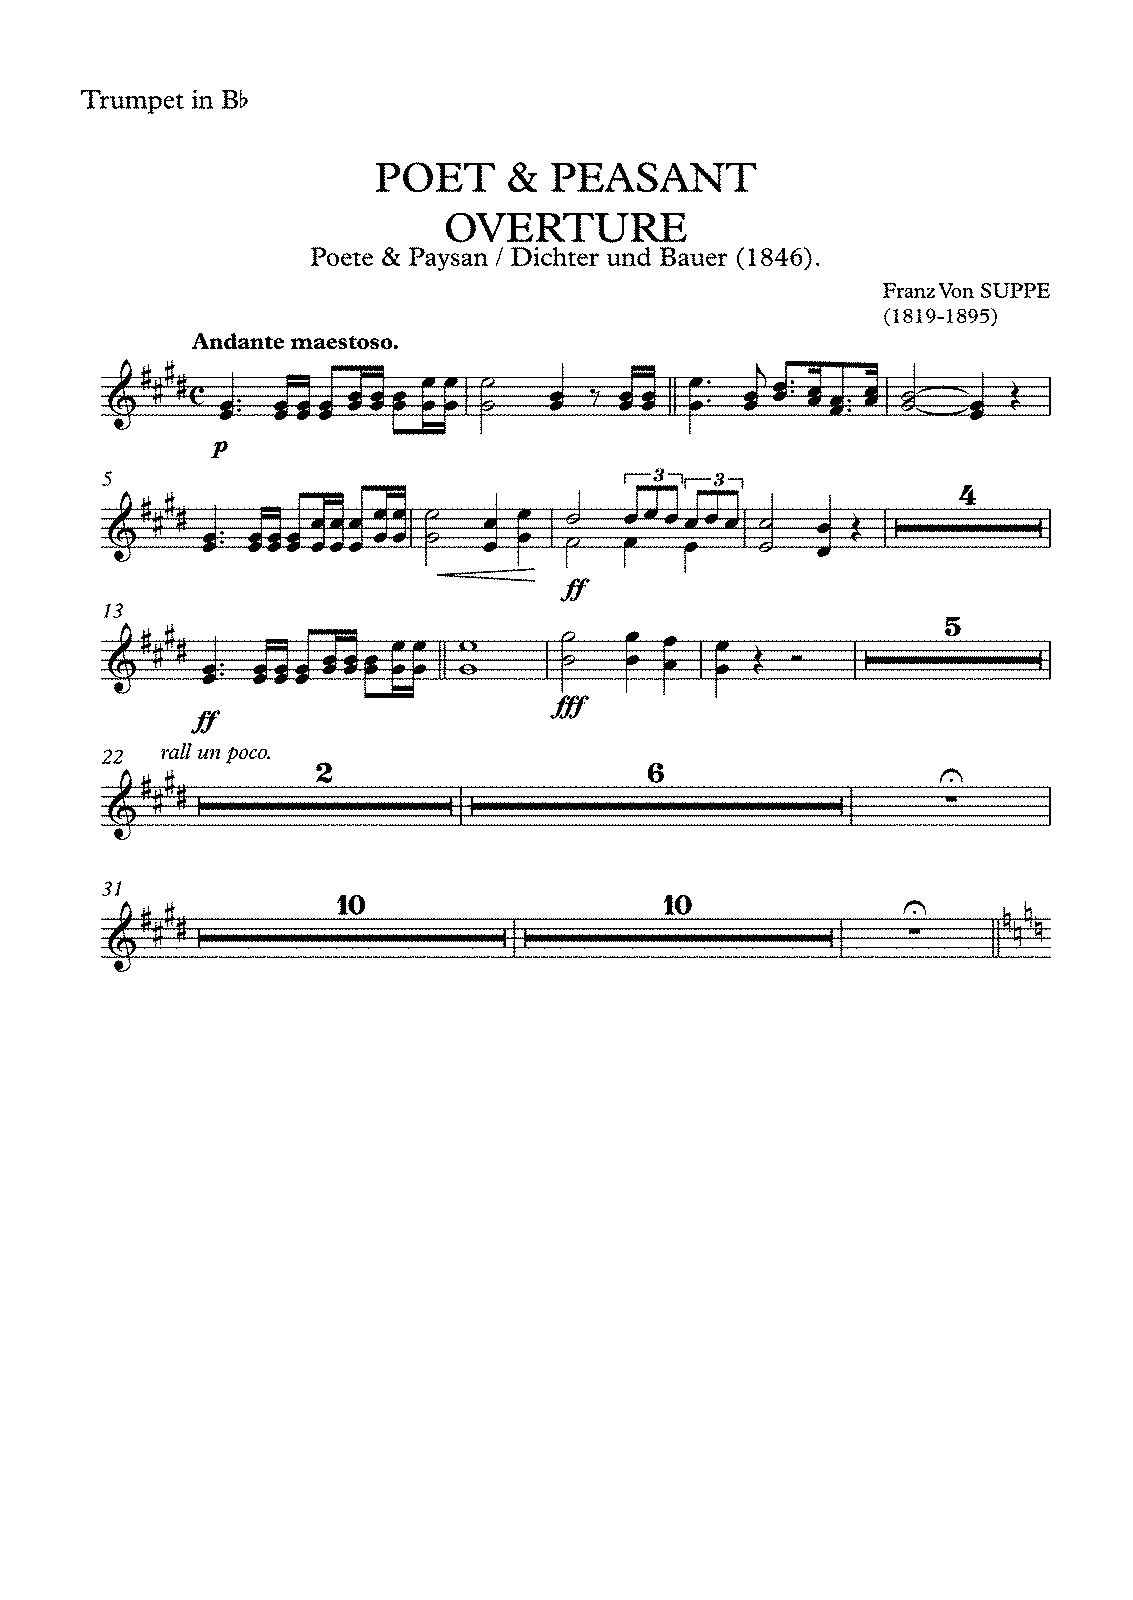 PMLP36358-Overture-Poet and Peasant - Trumpet in Bb.pdf